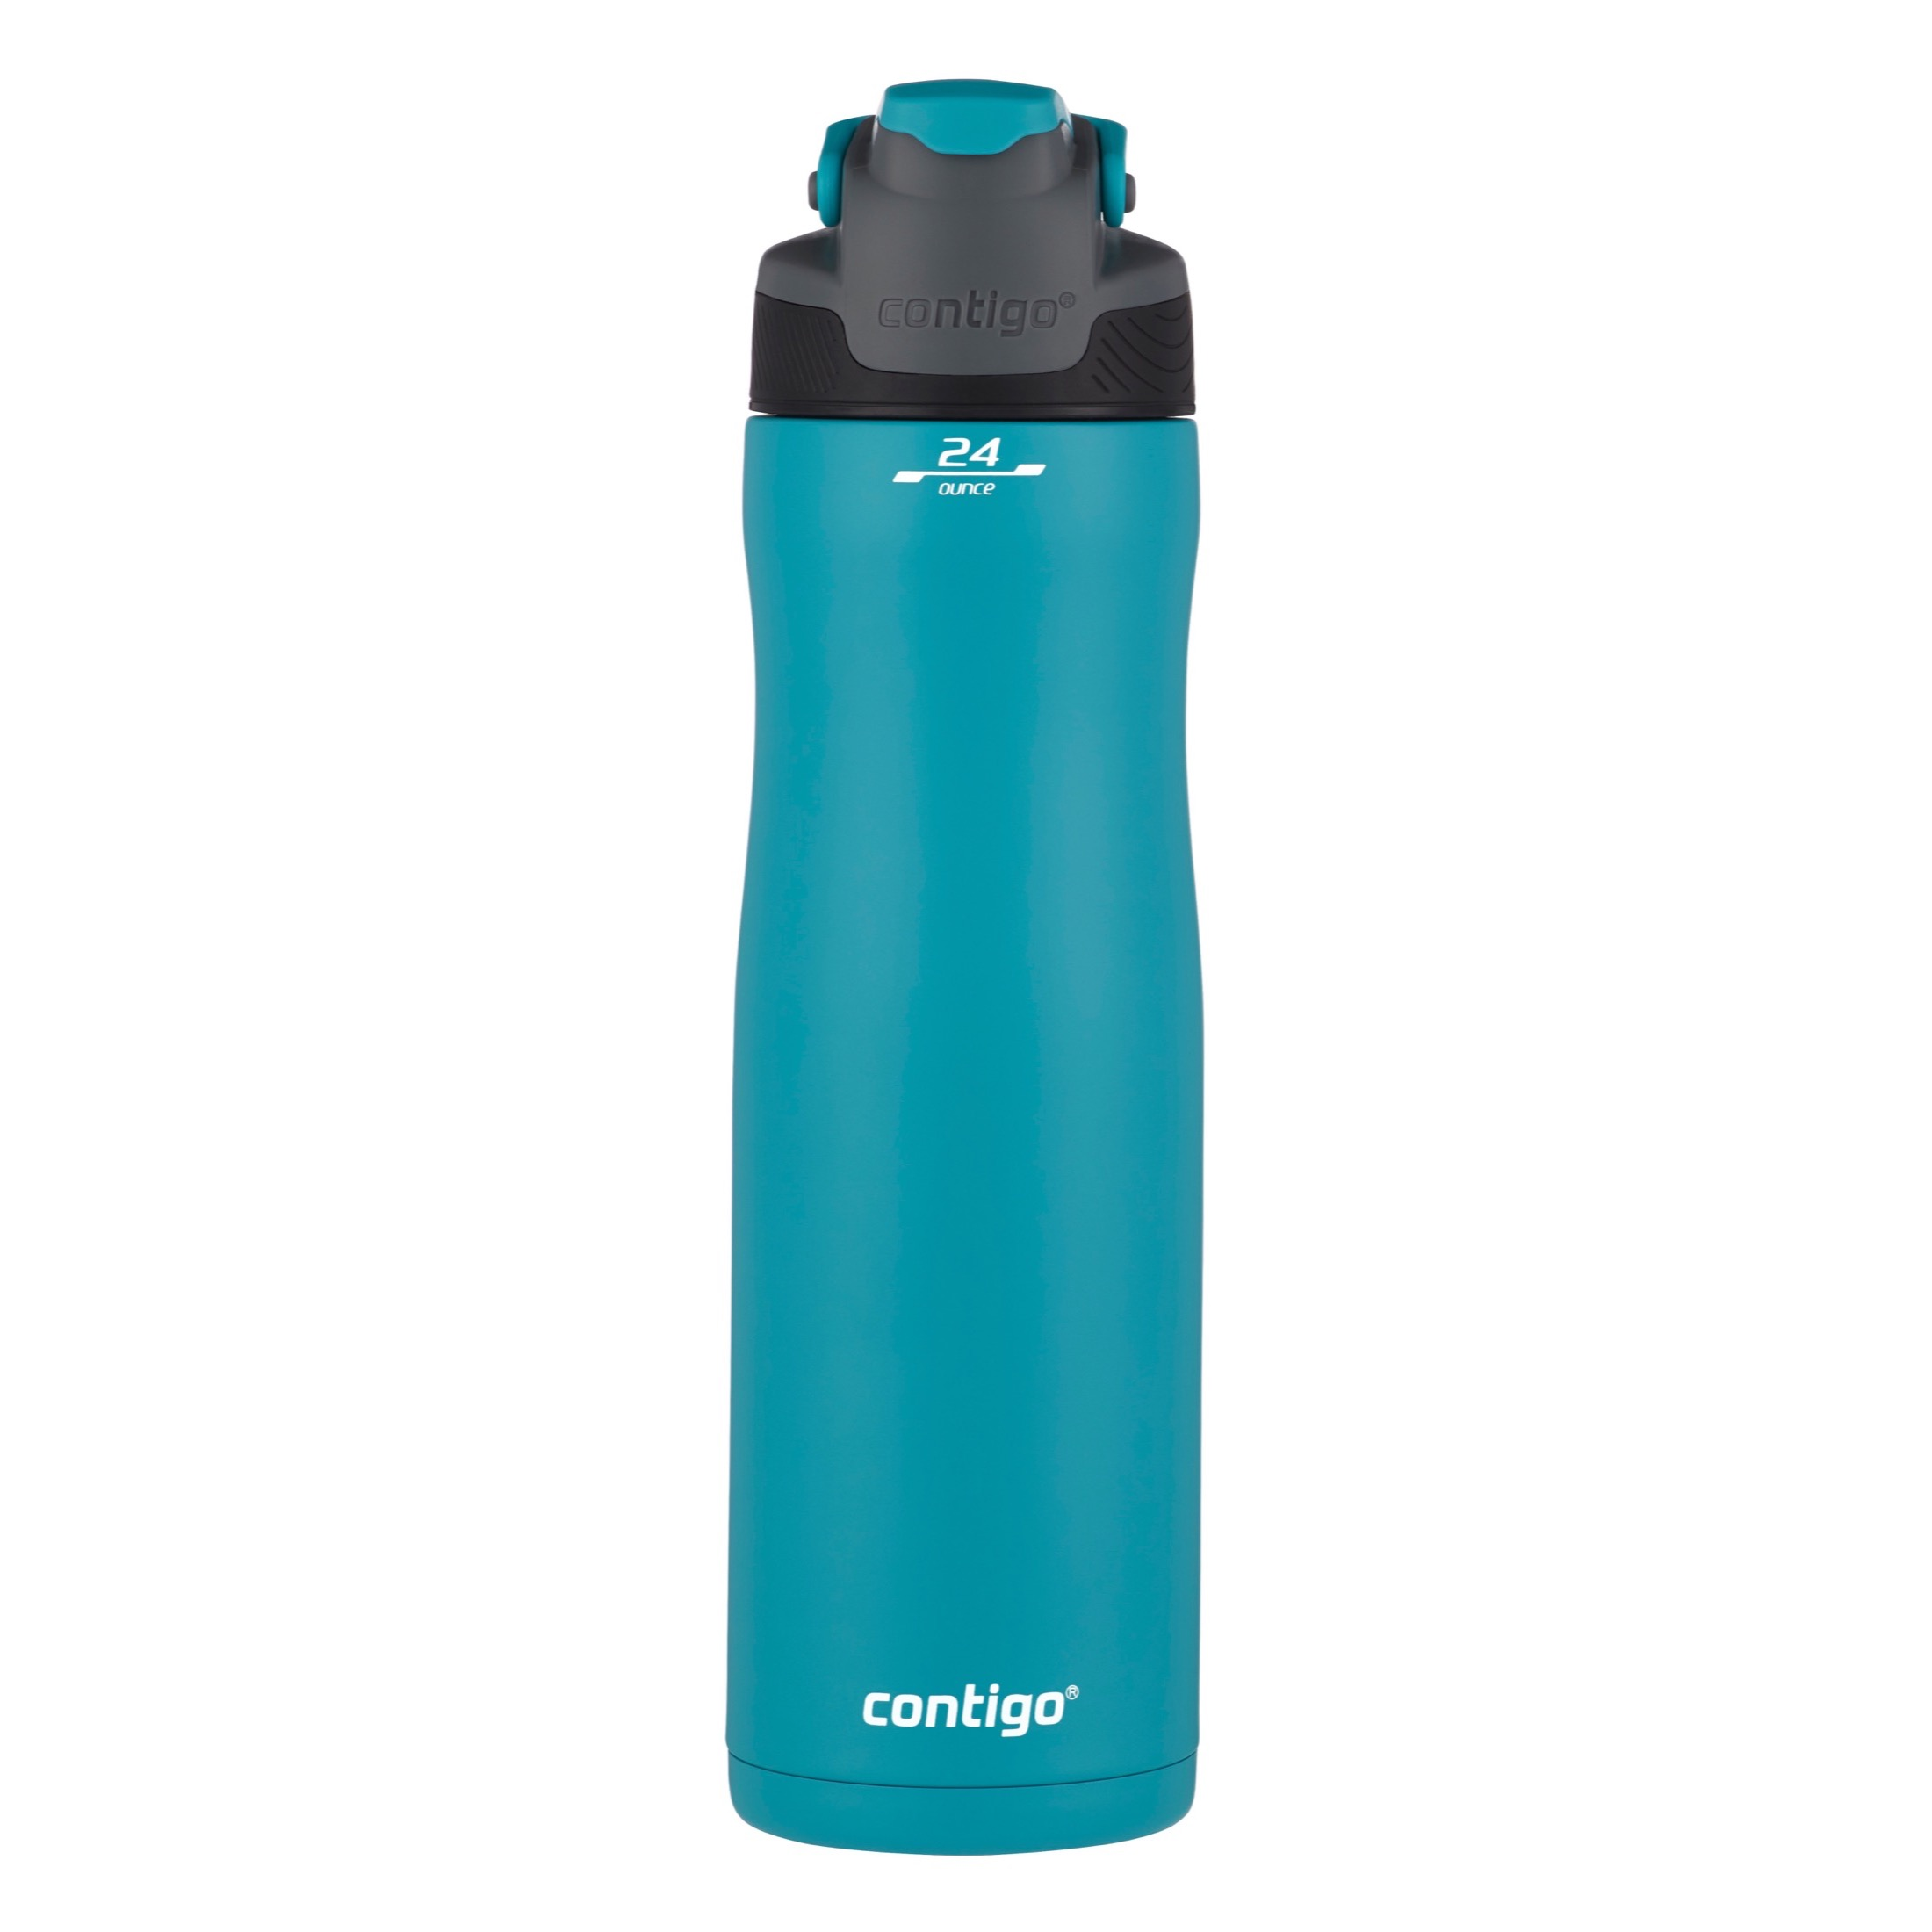 Contigo Leak-Proof and Spill-Proof Vacuum-Insulated Water Bottle